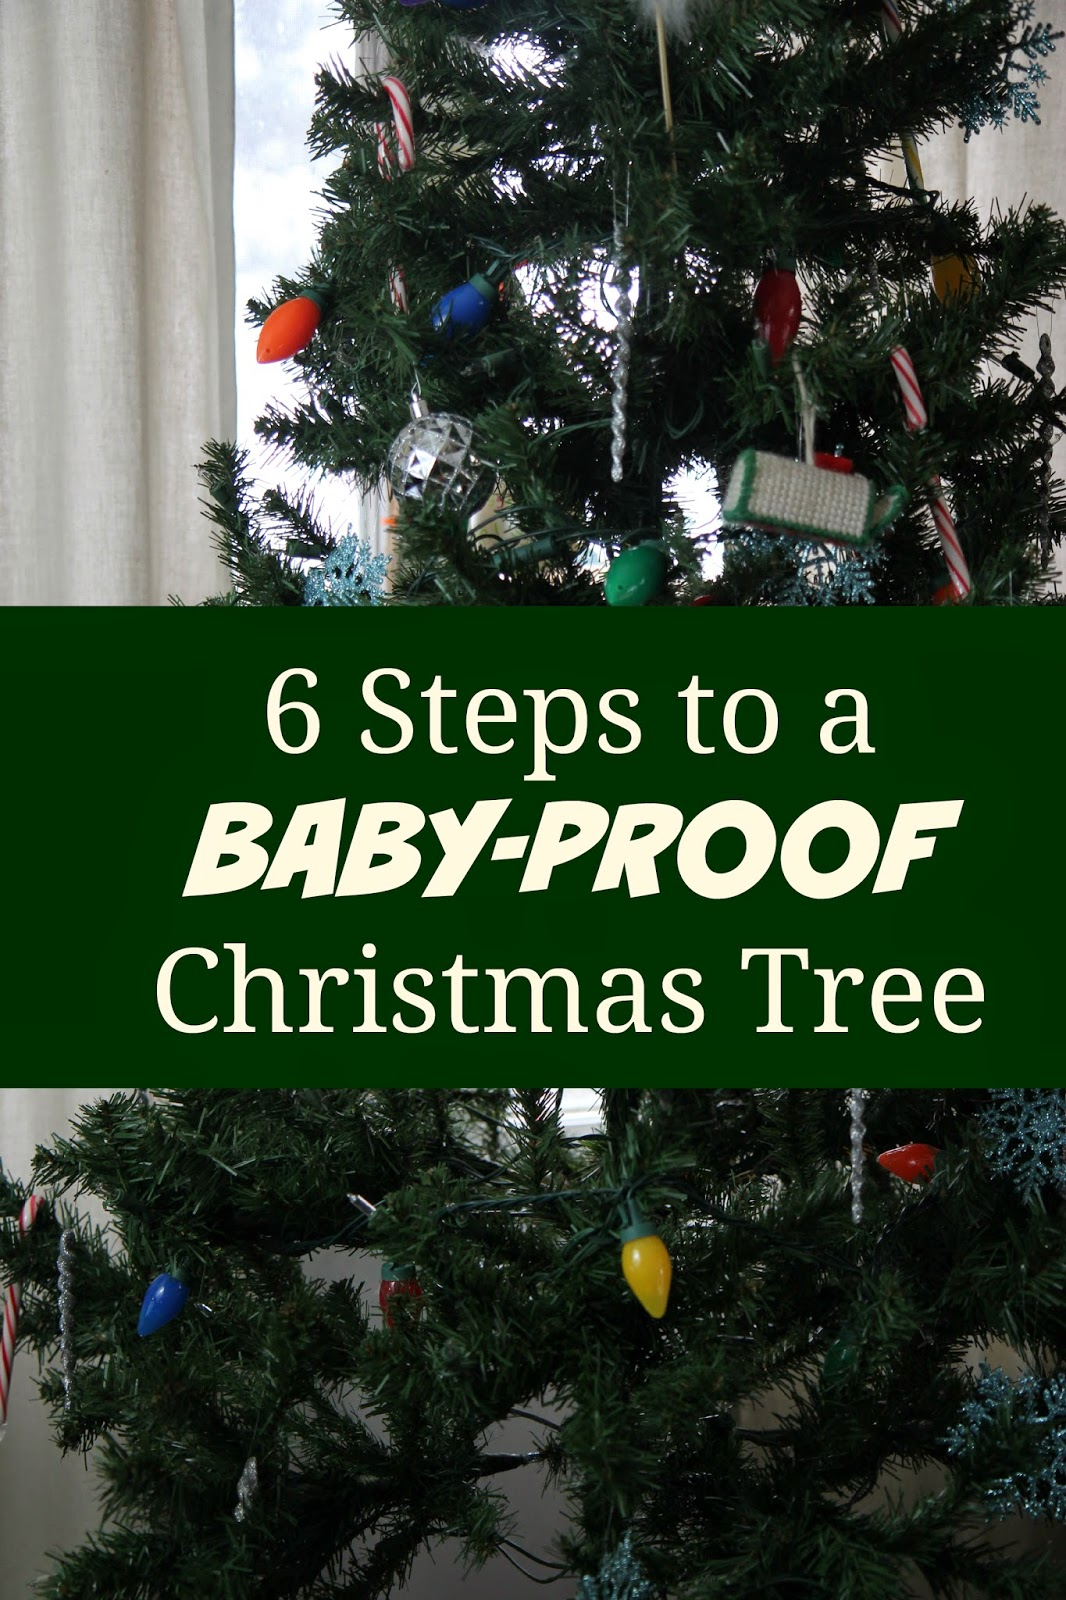 6 steps to a baby friendly christmas tree